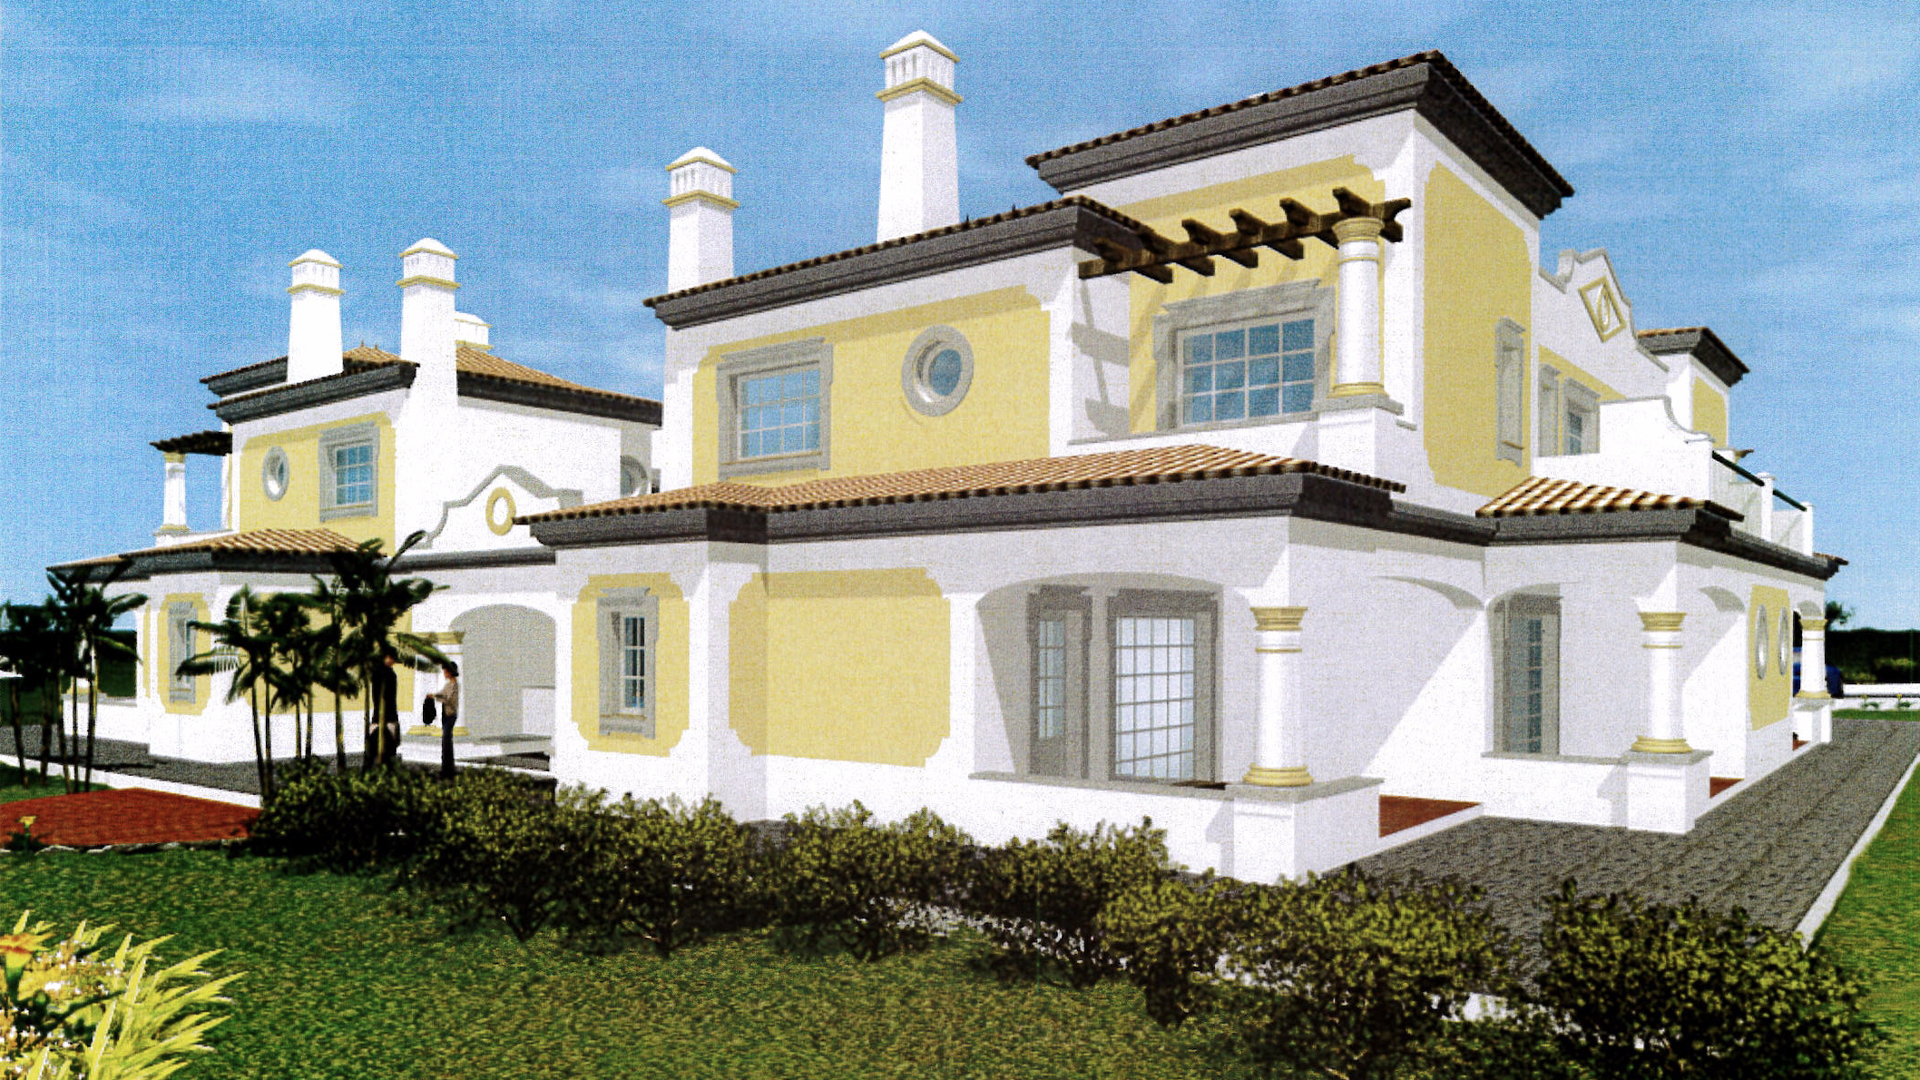 Plot With Planning Permission for Apartments / Large House or Hotel near Tavira | S2662 Large plot near Tavira and beaches. Flexible building options: large villa, hotel or apartments. Close to Ria Formosa and all amenities.